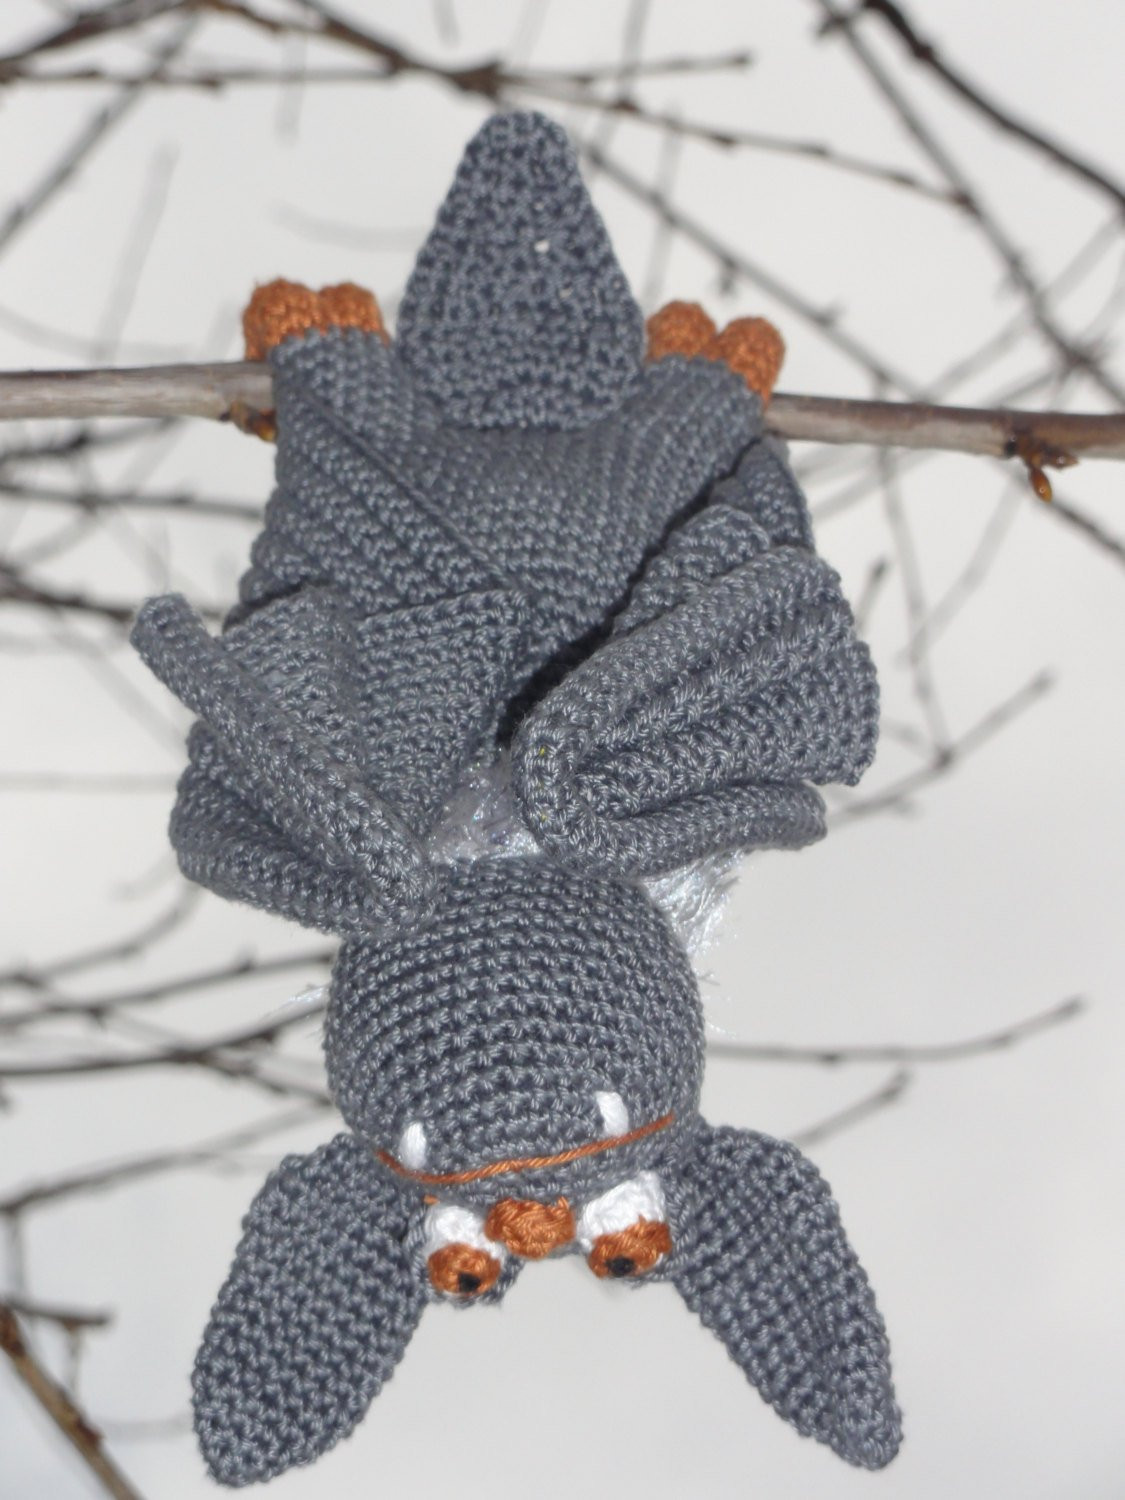 Free Crochet Bat Pattern Lovely Amigurumi Crochet Pattern Ultra Viola the Bat Of Gorgeous 42 Pics Free Crochet Bat Pattern